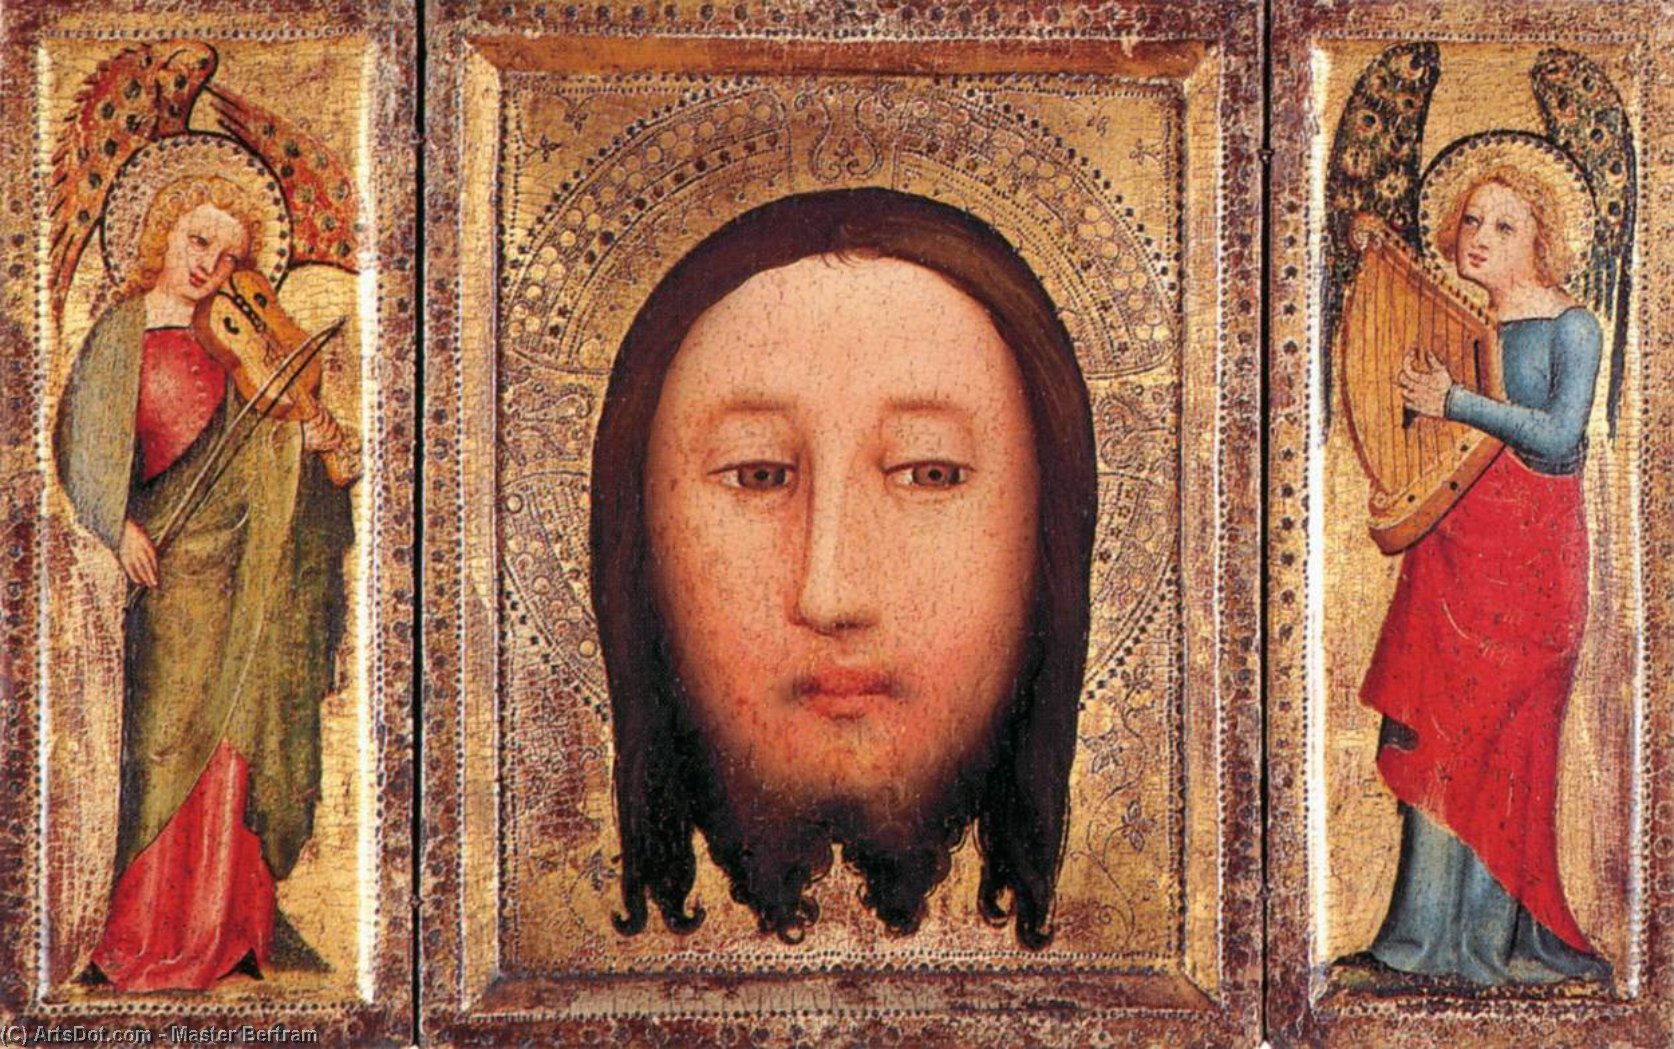 Triptych: The Holy Visage of Christ, Oil On Panel by Master Bertram (1345-1415, Germany)